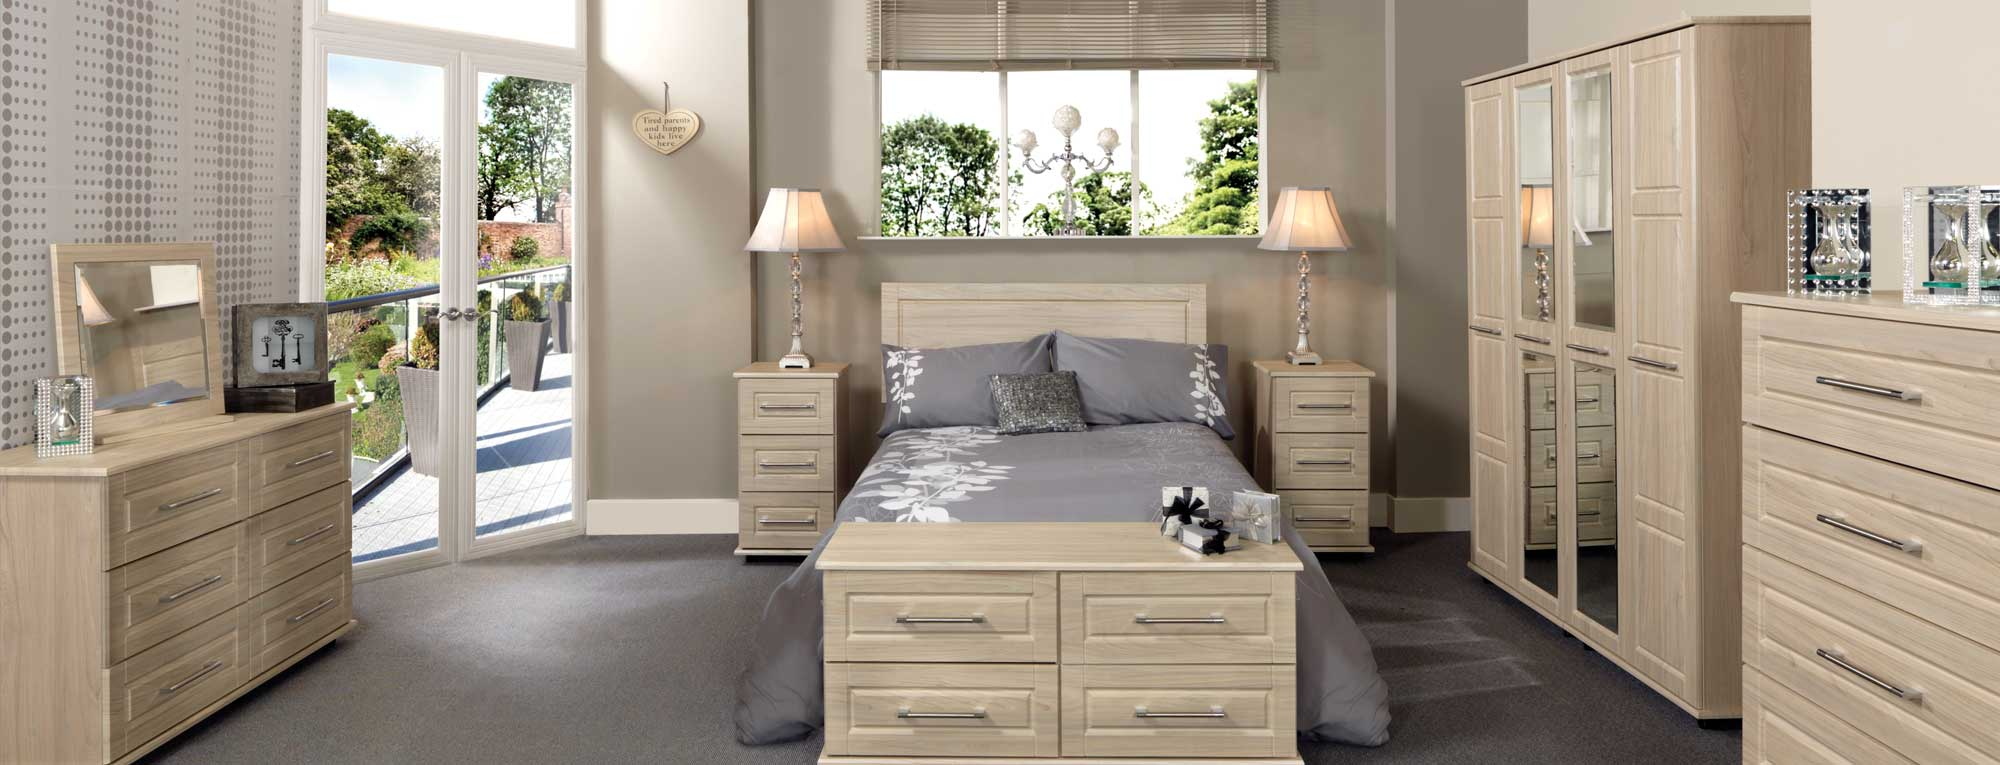 Bedroom Furniture Ranges with fantastic Low Prices this May!